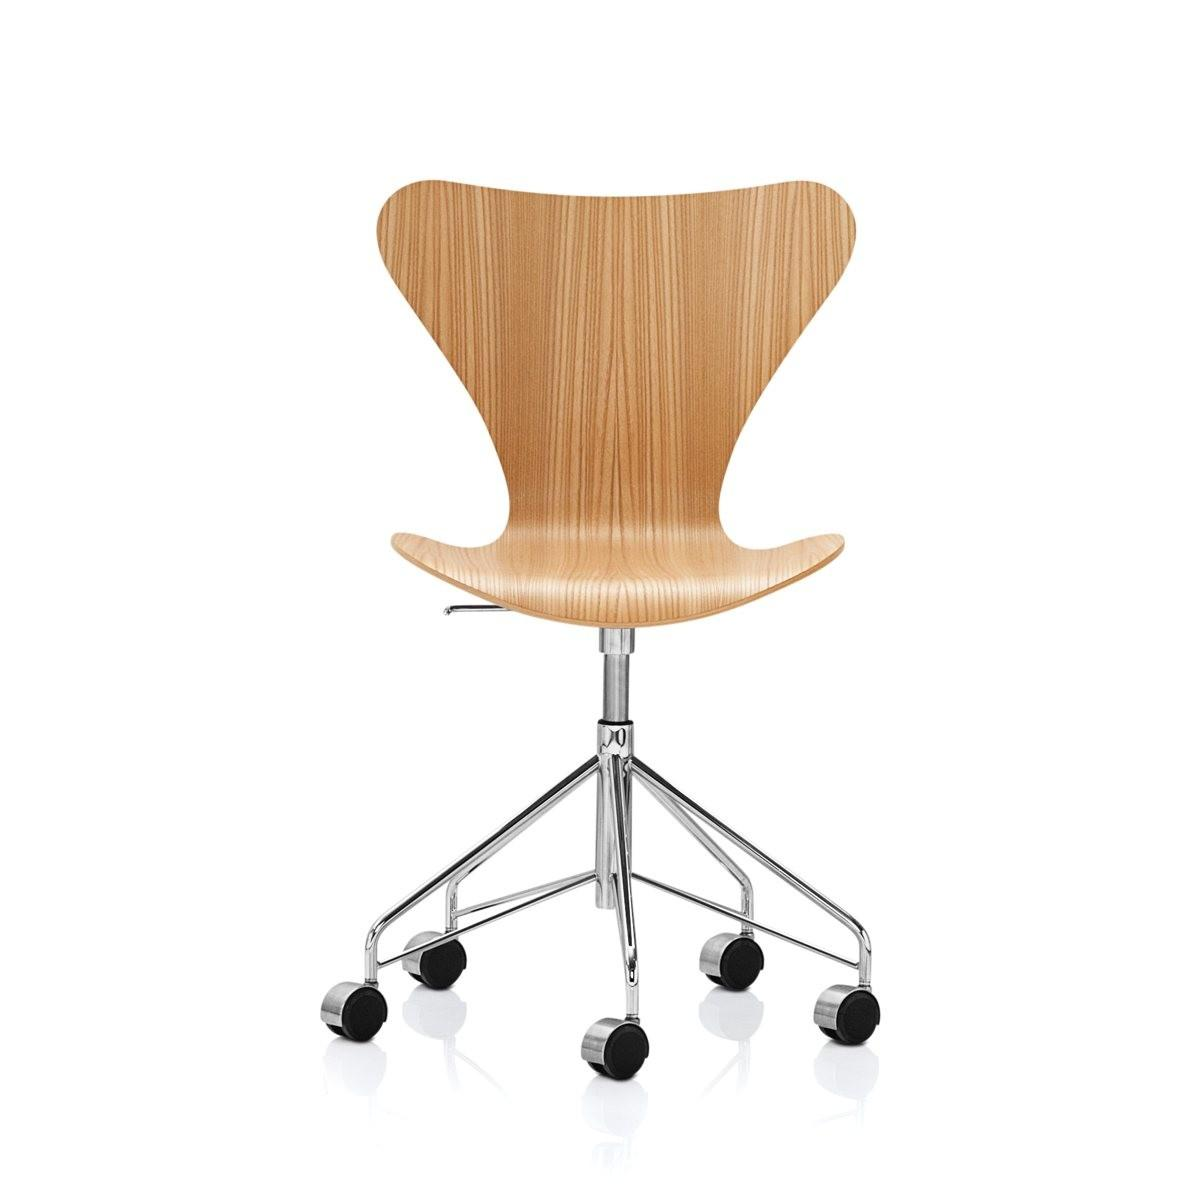 Series Swivel Chair Arne Jacobsen Republic